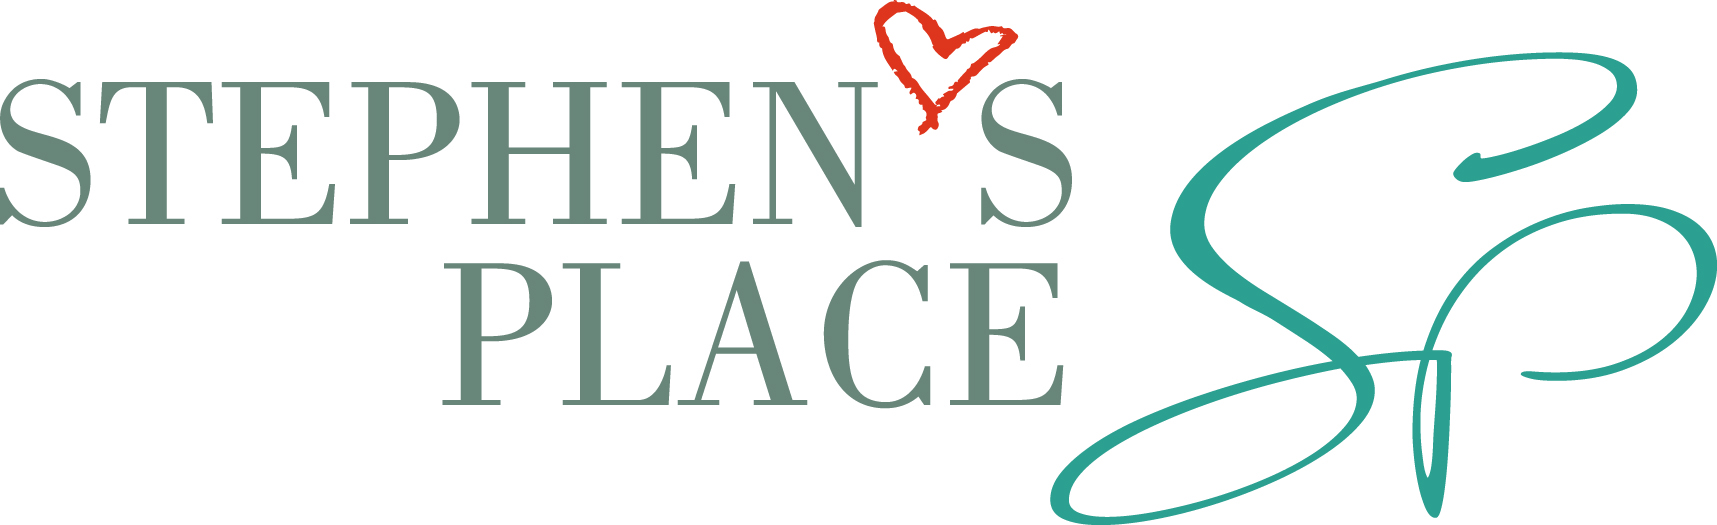 media/2017 StephensPlace logo.jpg